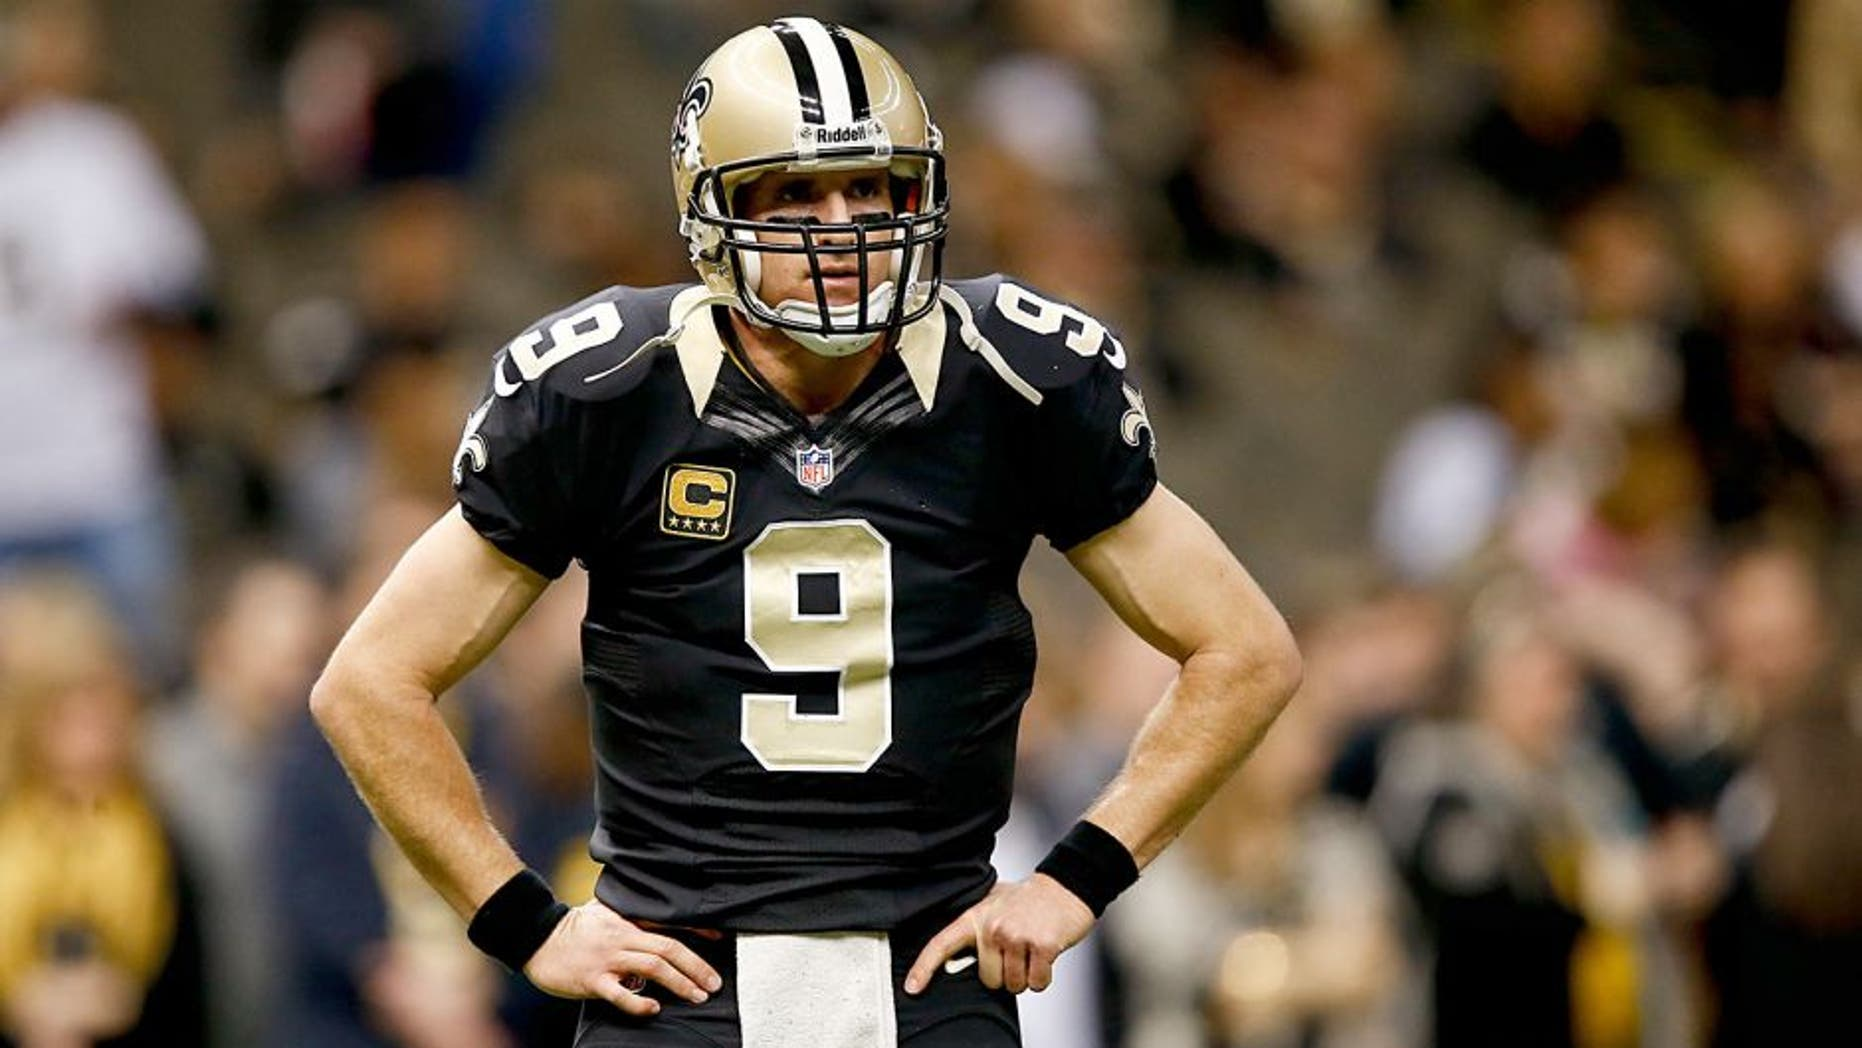 Dec 29, 2013; New Orleans, LA, USA; New Orleans Saints quarterback Drew Brees (9) prior to kickoff of a game against the Tampa Bay Buccaneers at the Mercedes-Benz Superdome. Mandatory Credit: Derick E. Hingle-USA TODAY Sports